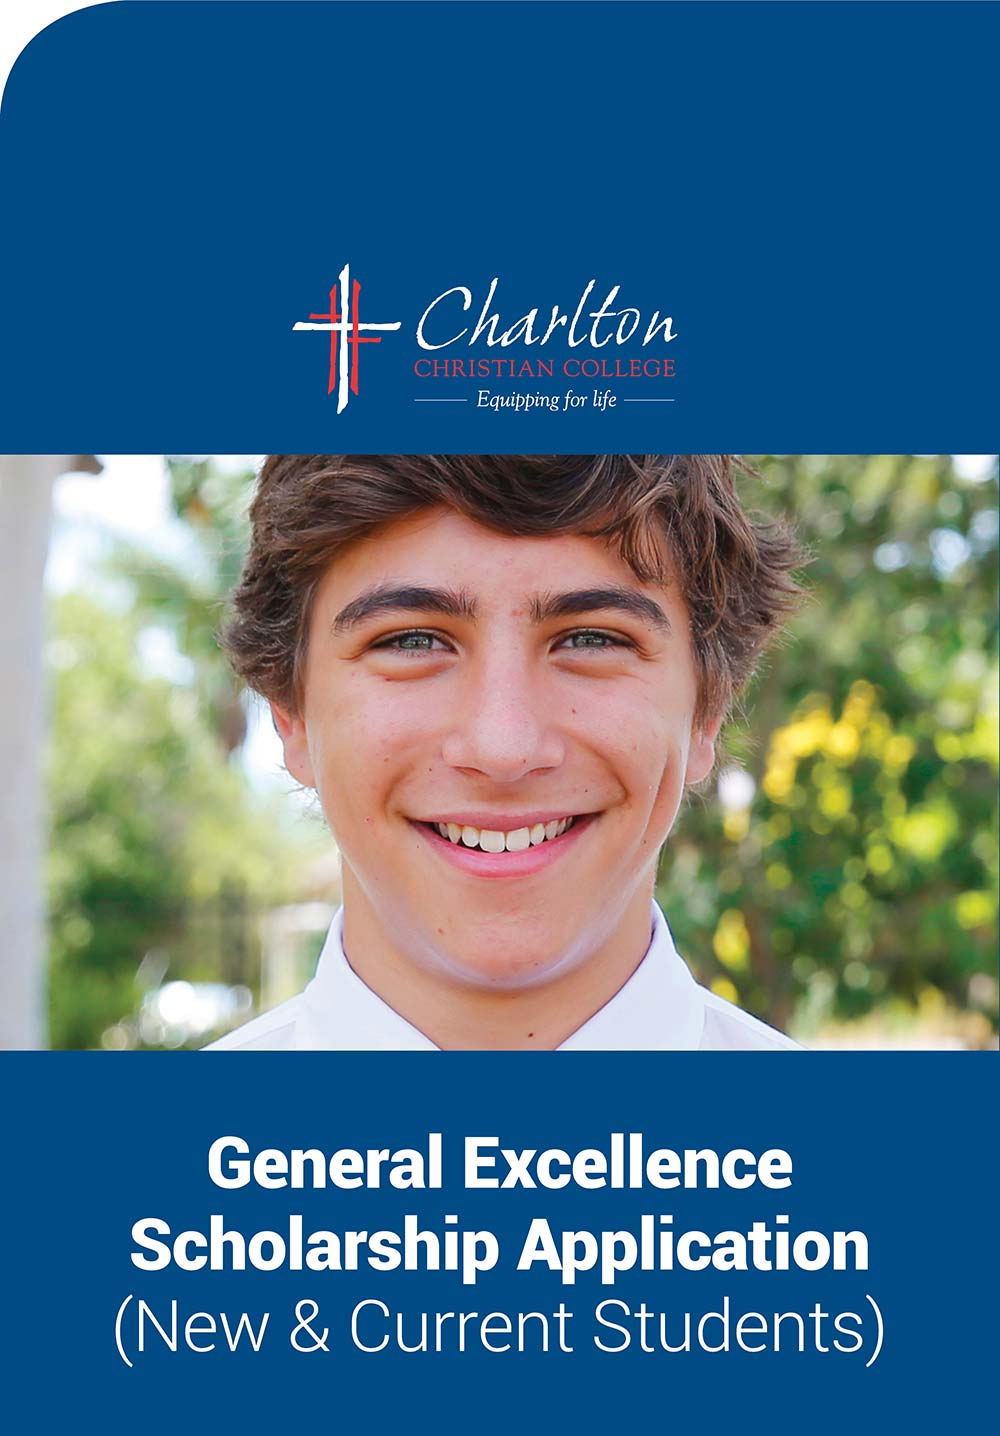 charlton christian college scholarship general excellence application